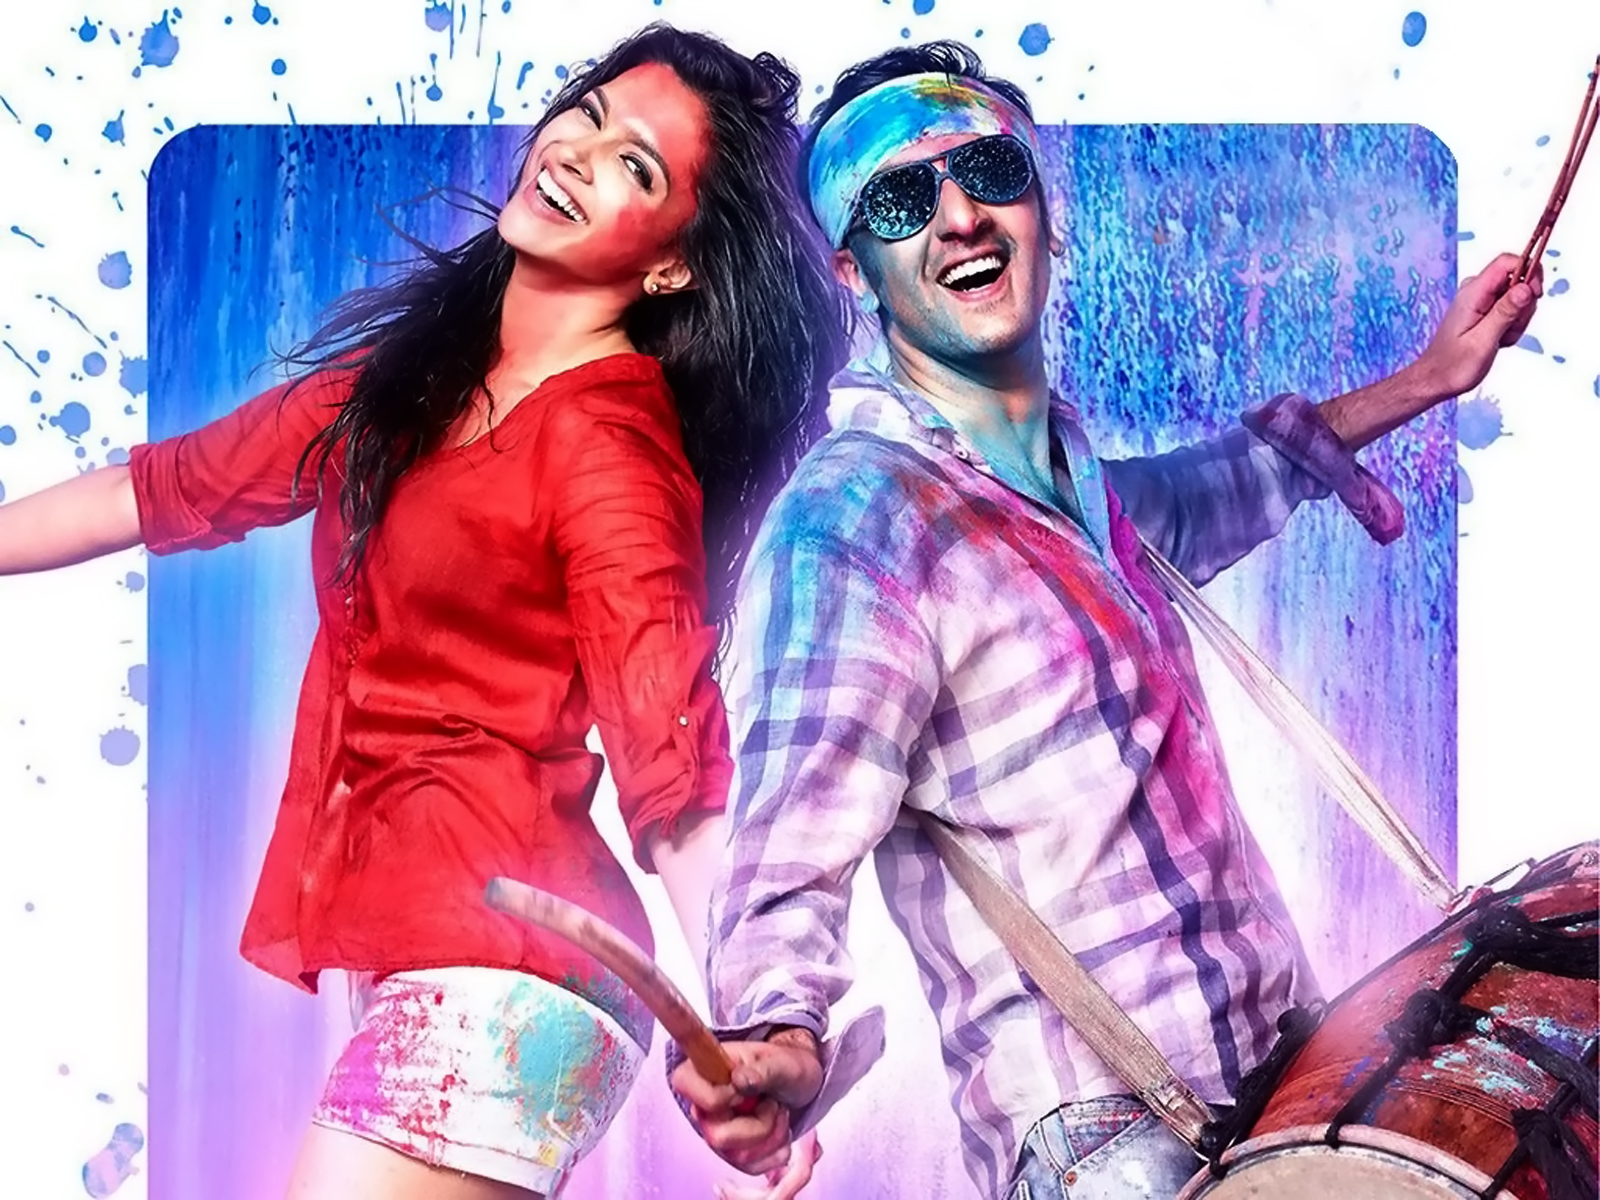 theatrical trailer (yeh jawaani hai deewani) - bollywood hungama